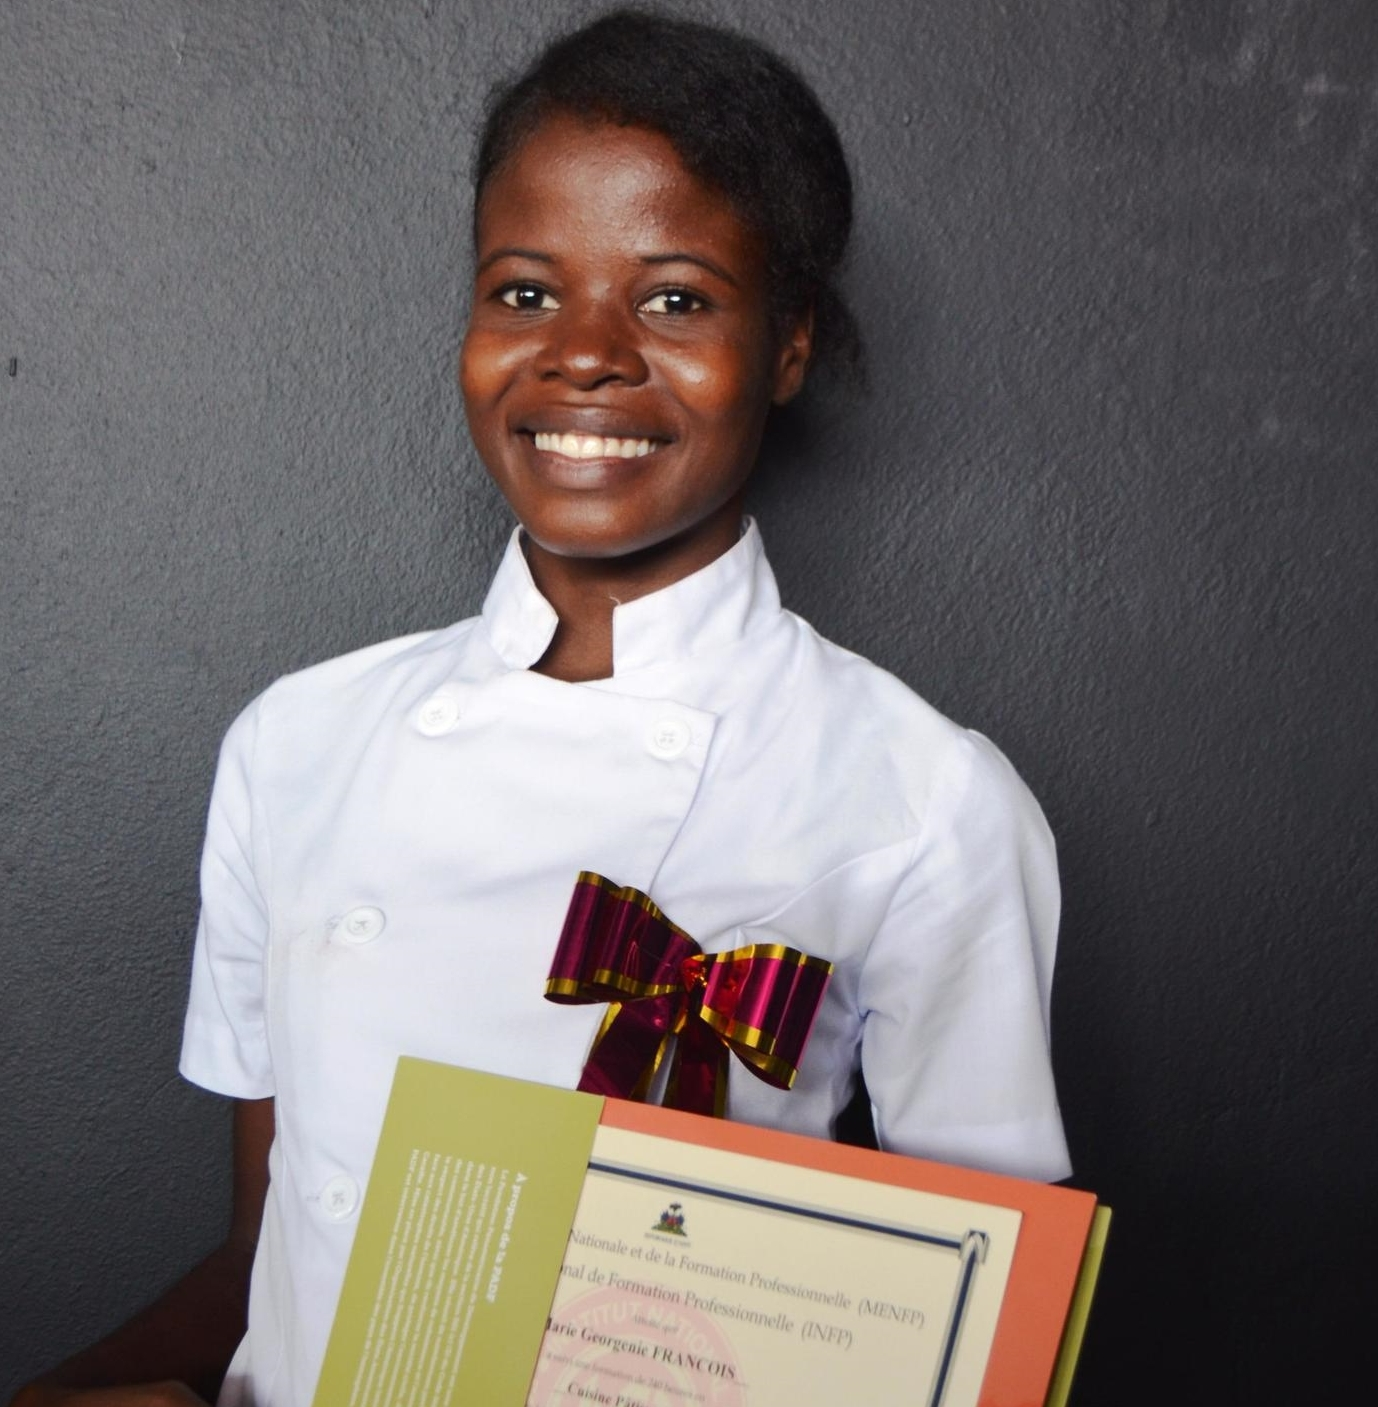 François Marie Georgénie, 24, lives in Cité Soleil. She now has more job opportunities as a result of her training incooking and pastry.